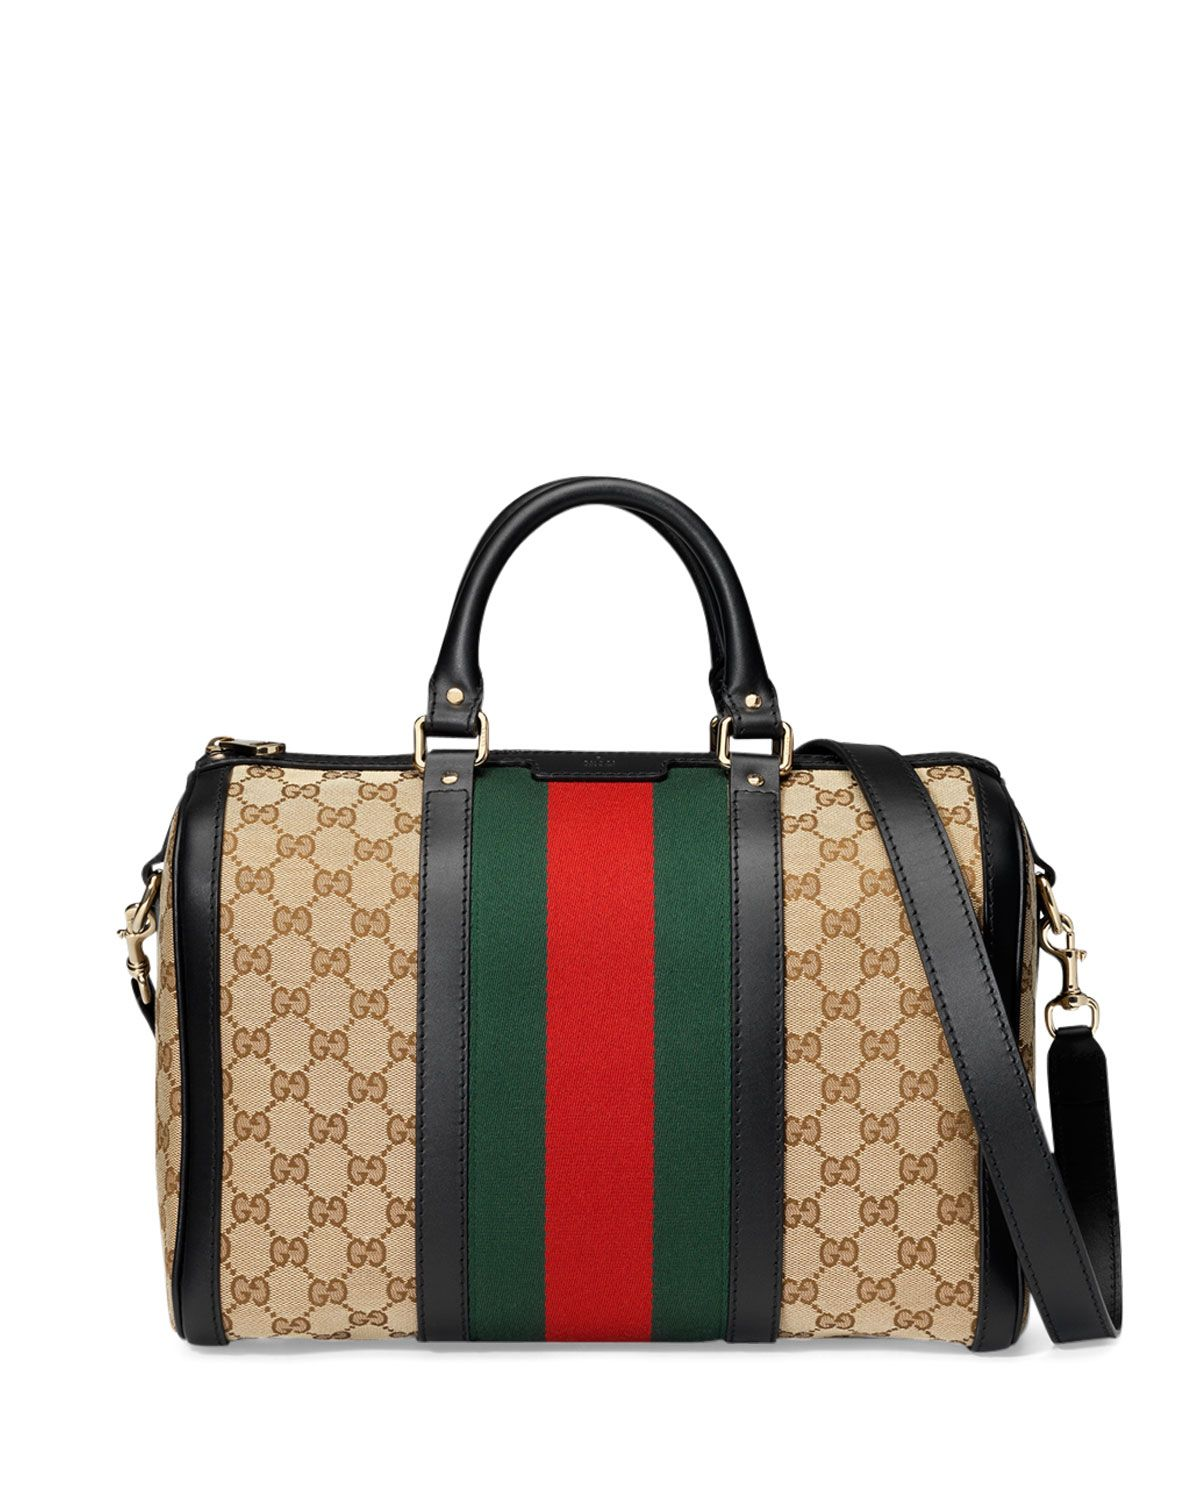 03b3d024bbf5 Vintage Web Medium Boston Bag Black/Red/Green | *Neiman Marcus ...